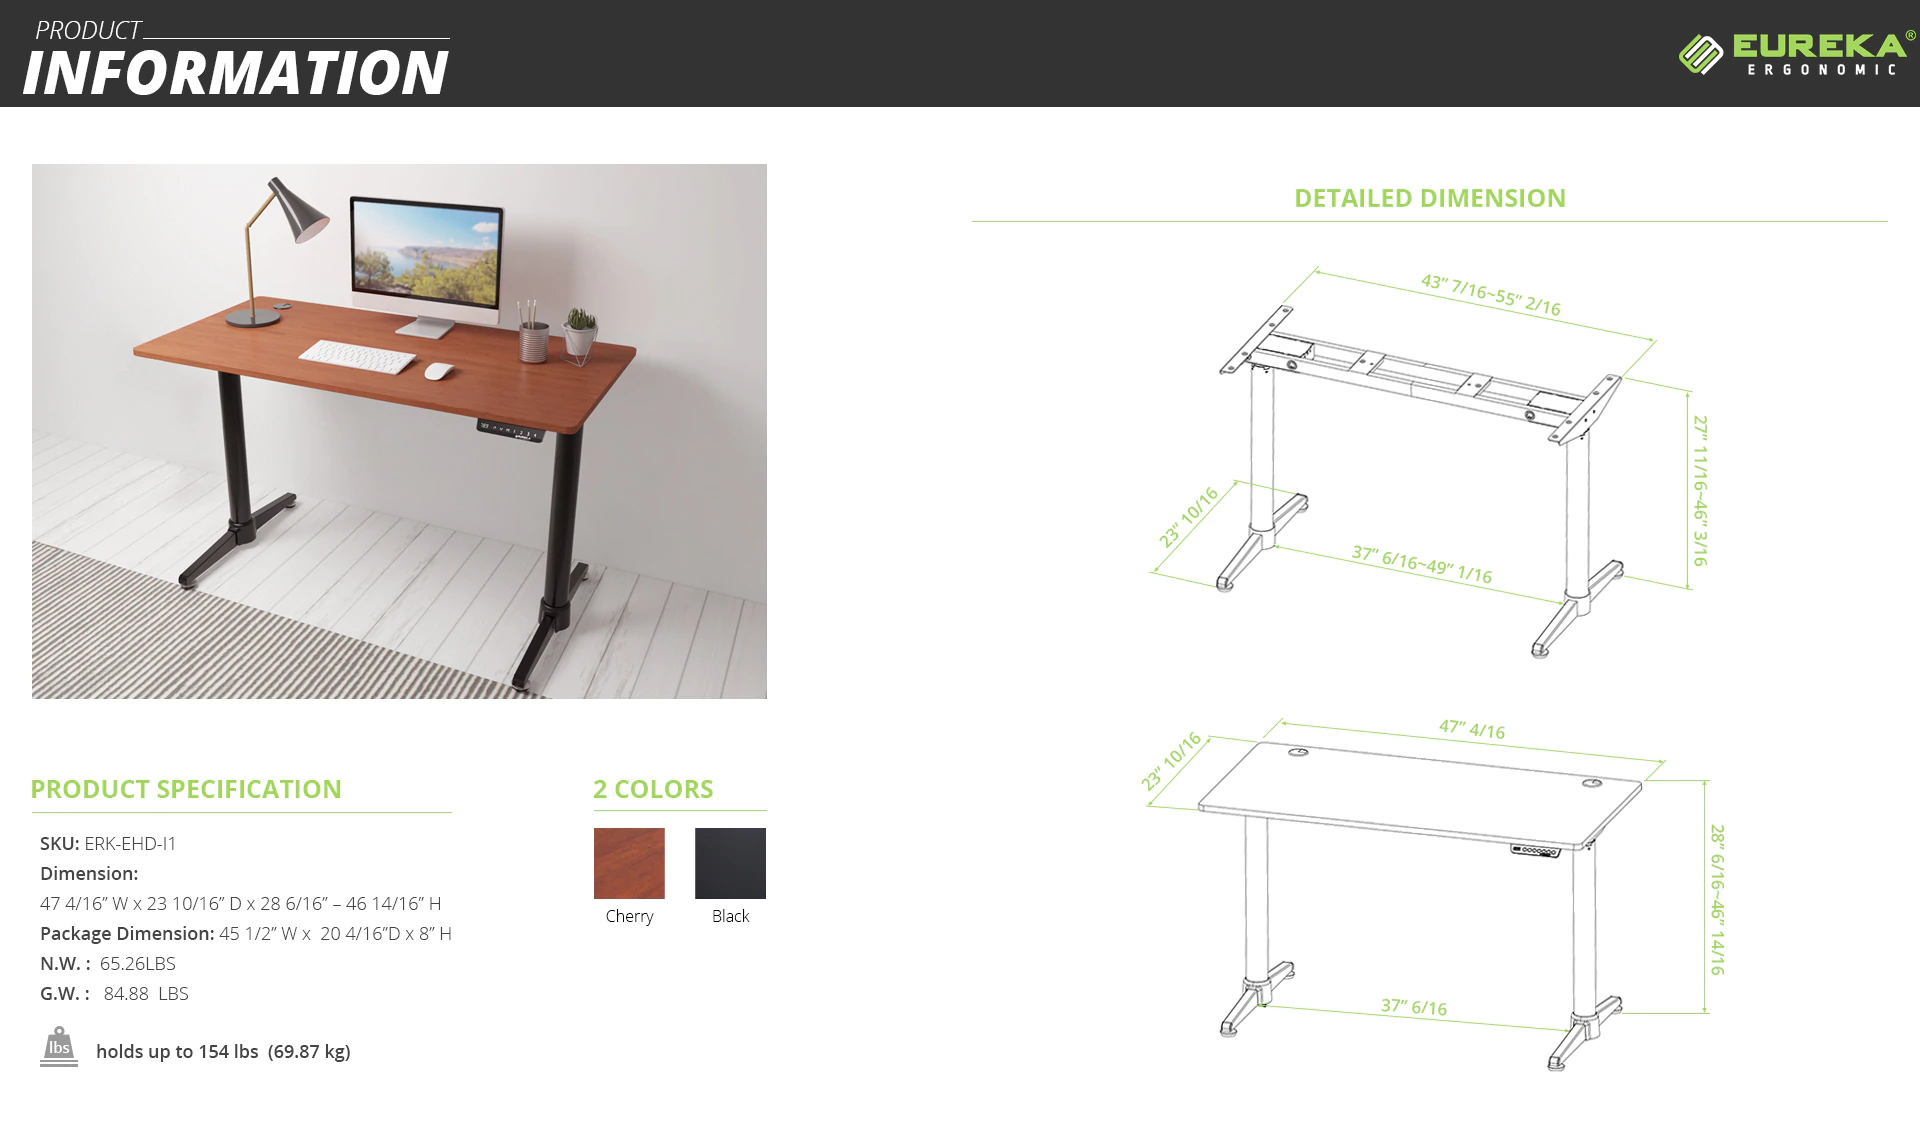 iMovR+Eureka i1 Standing Desk Product Specifications